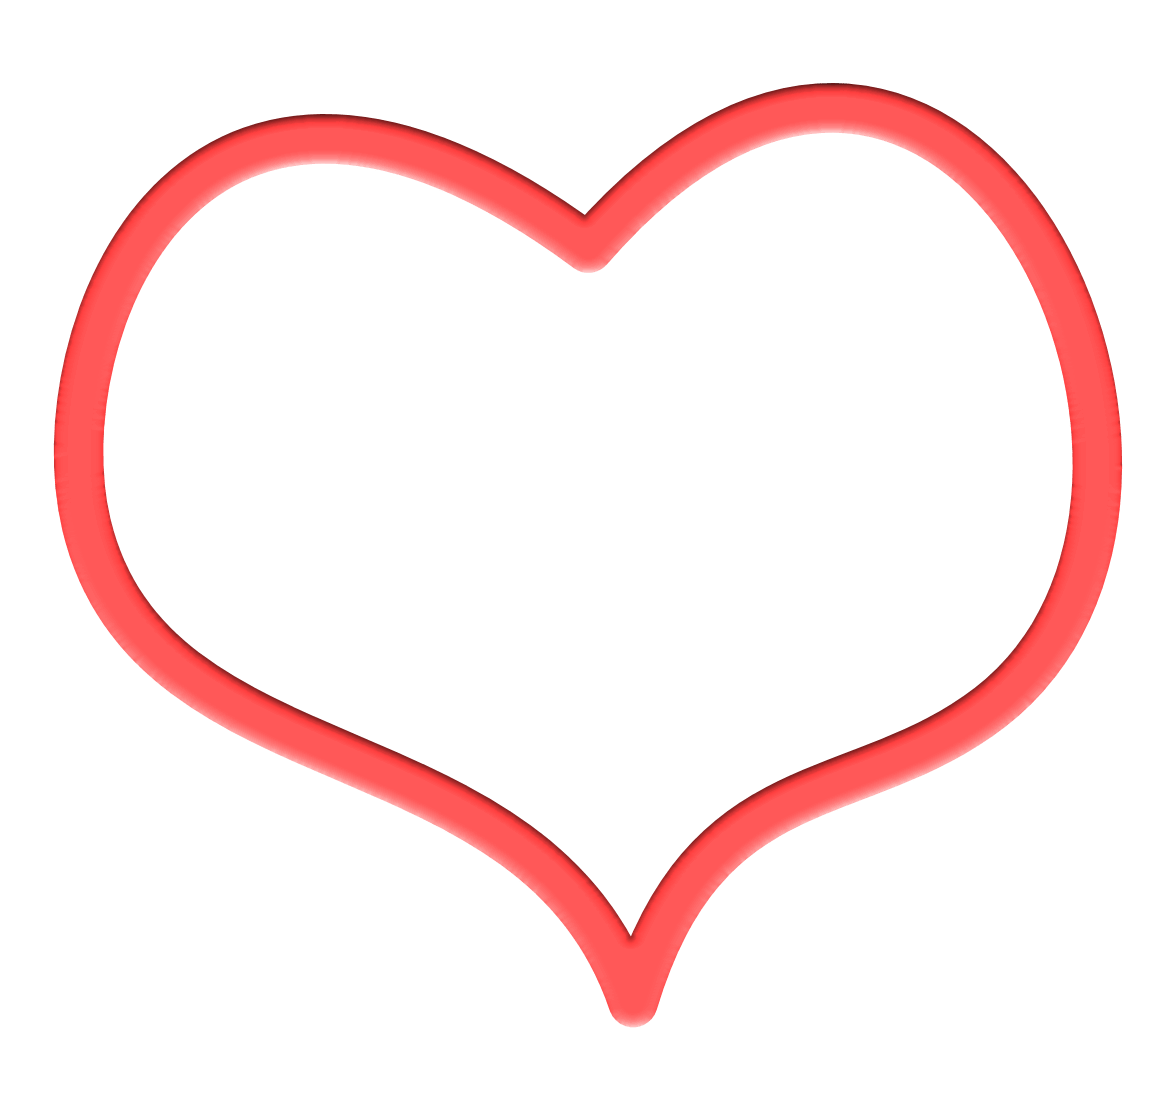 1150x1100 Heart Outline Red Drawing Transparent Png